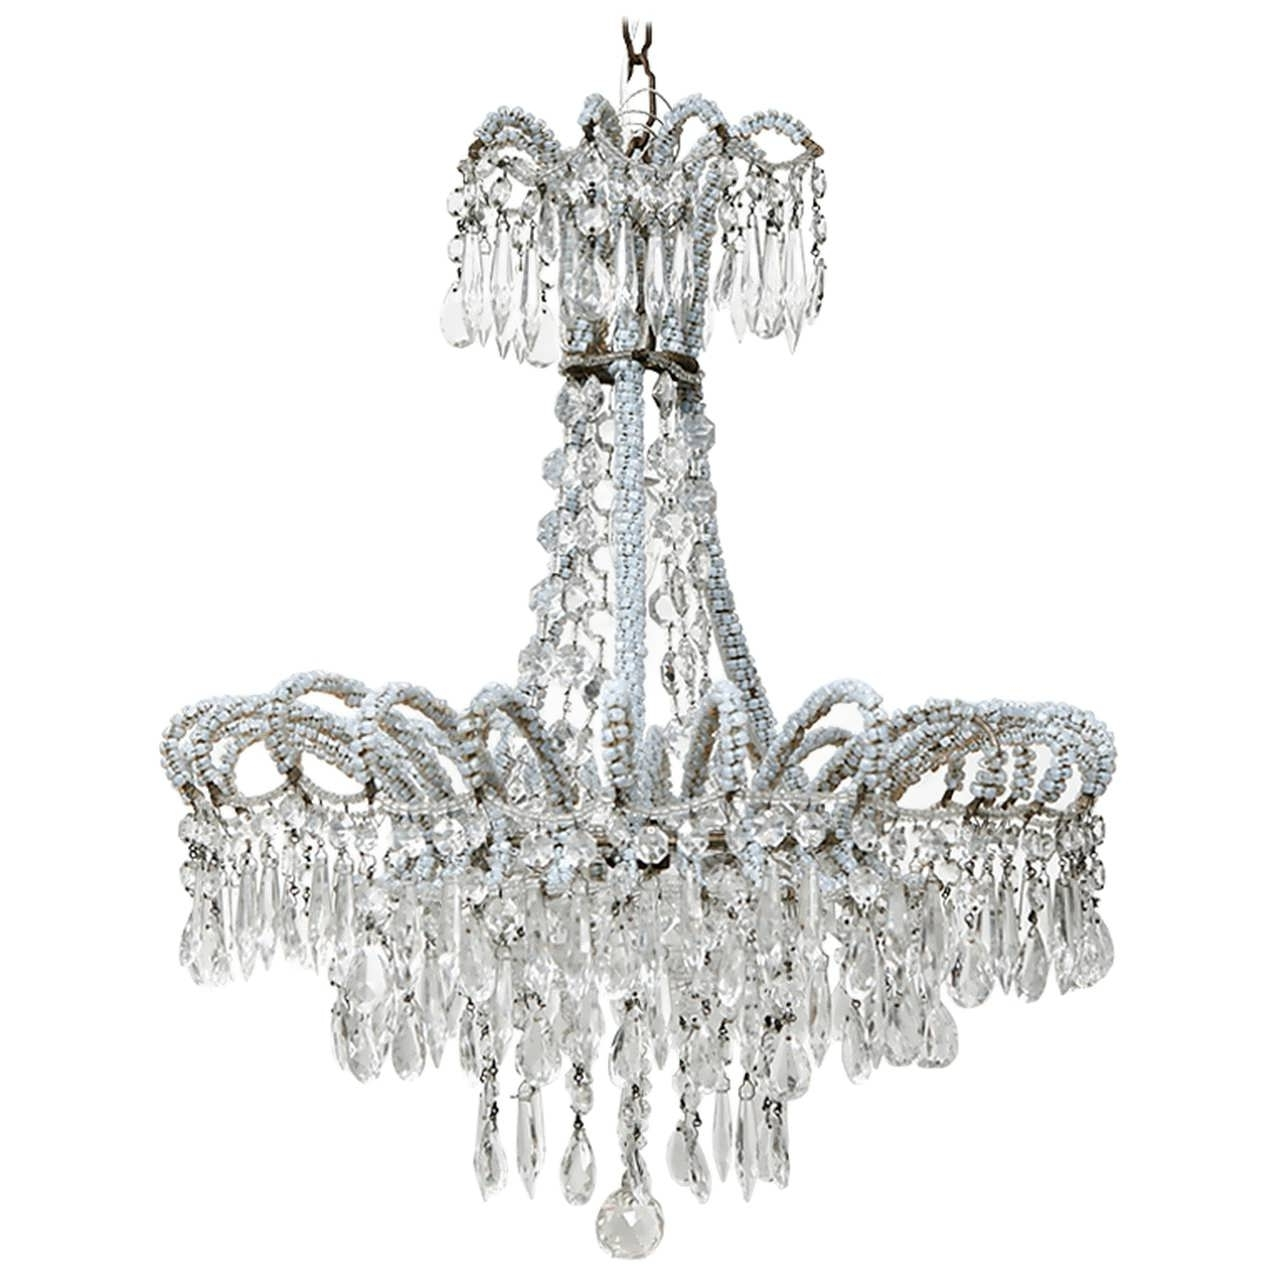 Italian Chandeliers Style Regarding Most Up To Date Chandelier : Orb Chandelier Candle Chandelier Italian Chandelier (View 9 of 15)